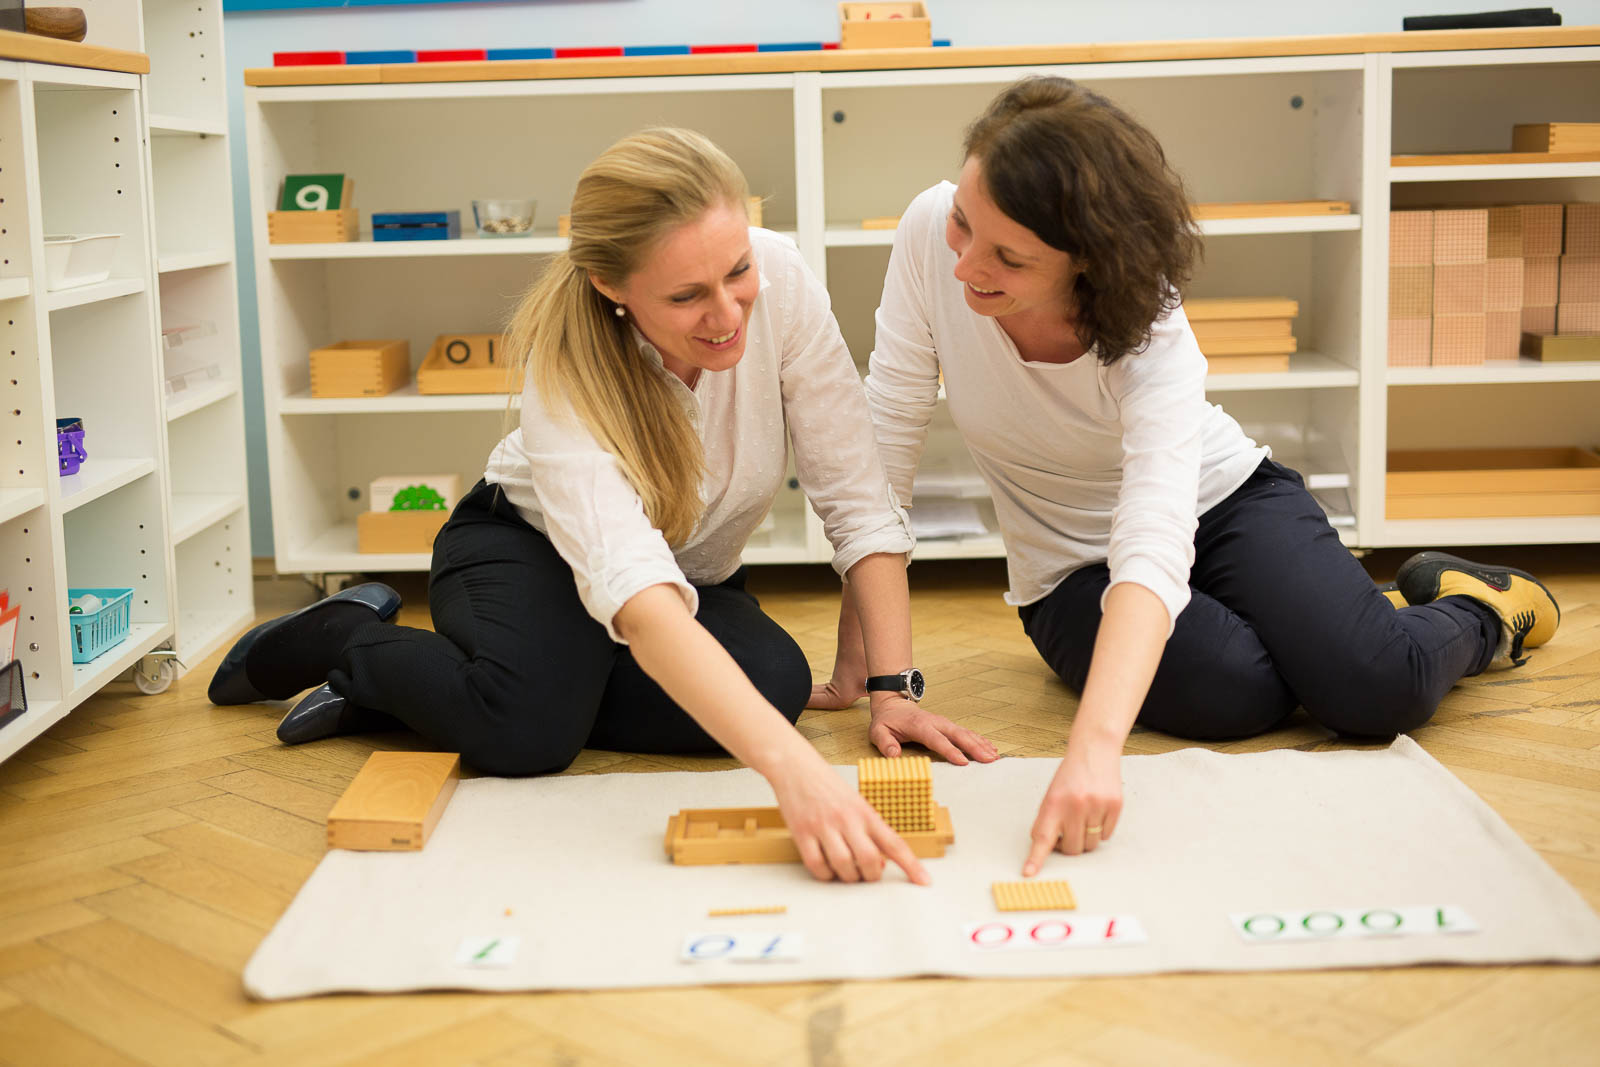 the role of a montessori teacher Write a comprehensive note on the role of a teacher in the montessori classroomthe teacher in a montessori classroom takes on a completely different role to a teacher in a traditional classroom.